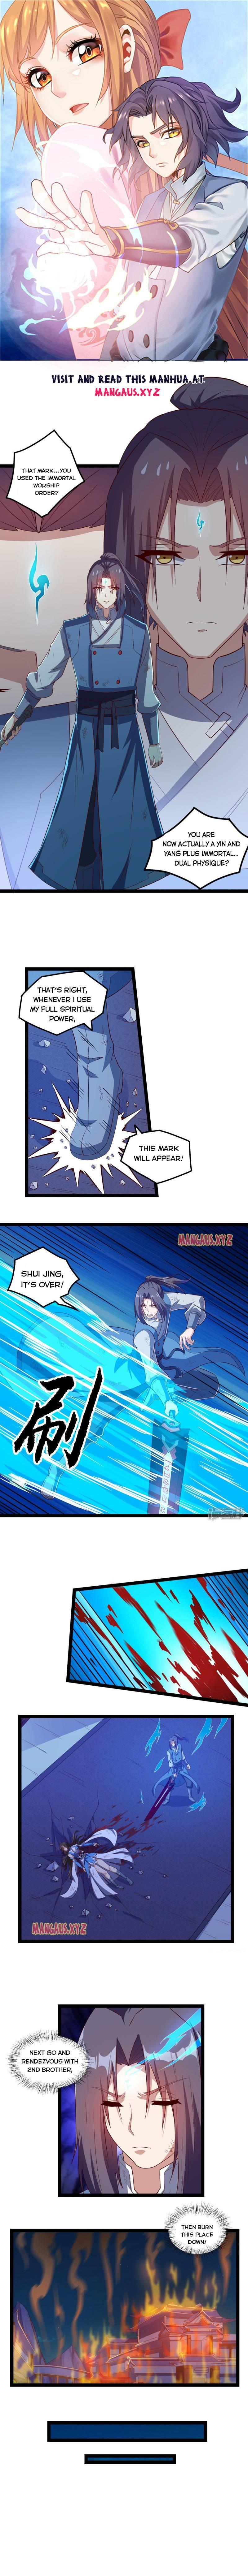 Trample On The River Of Immortality Chapter 165 page 1 - Mangakakalots.com